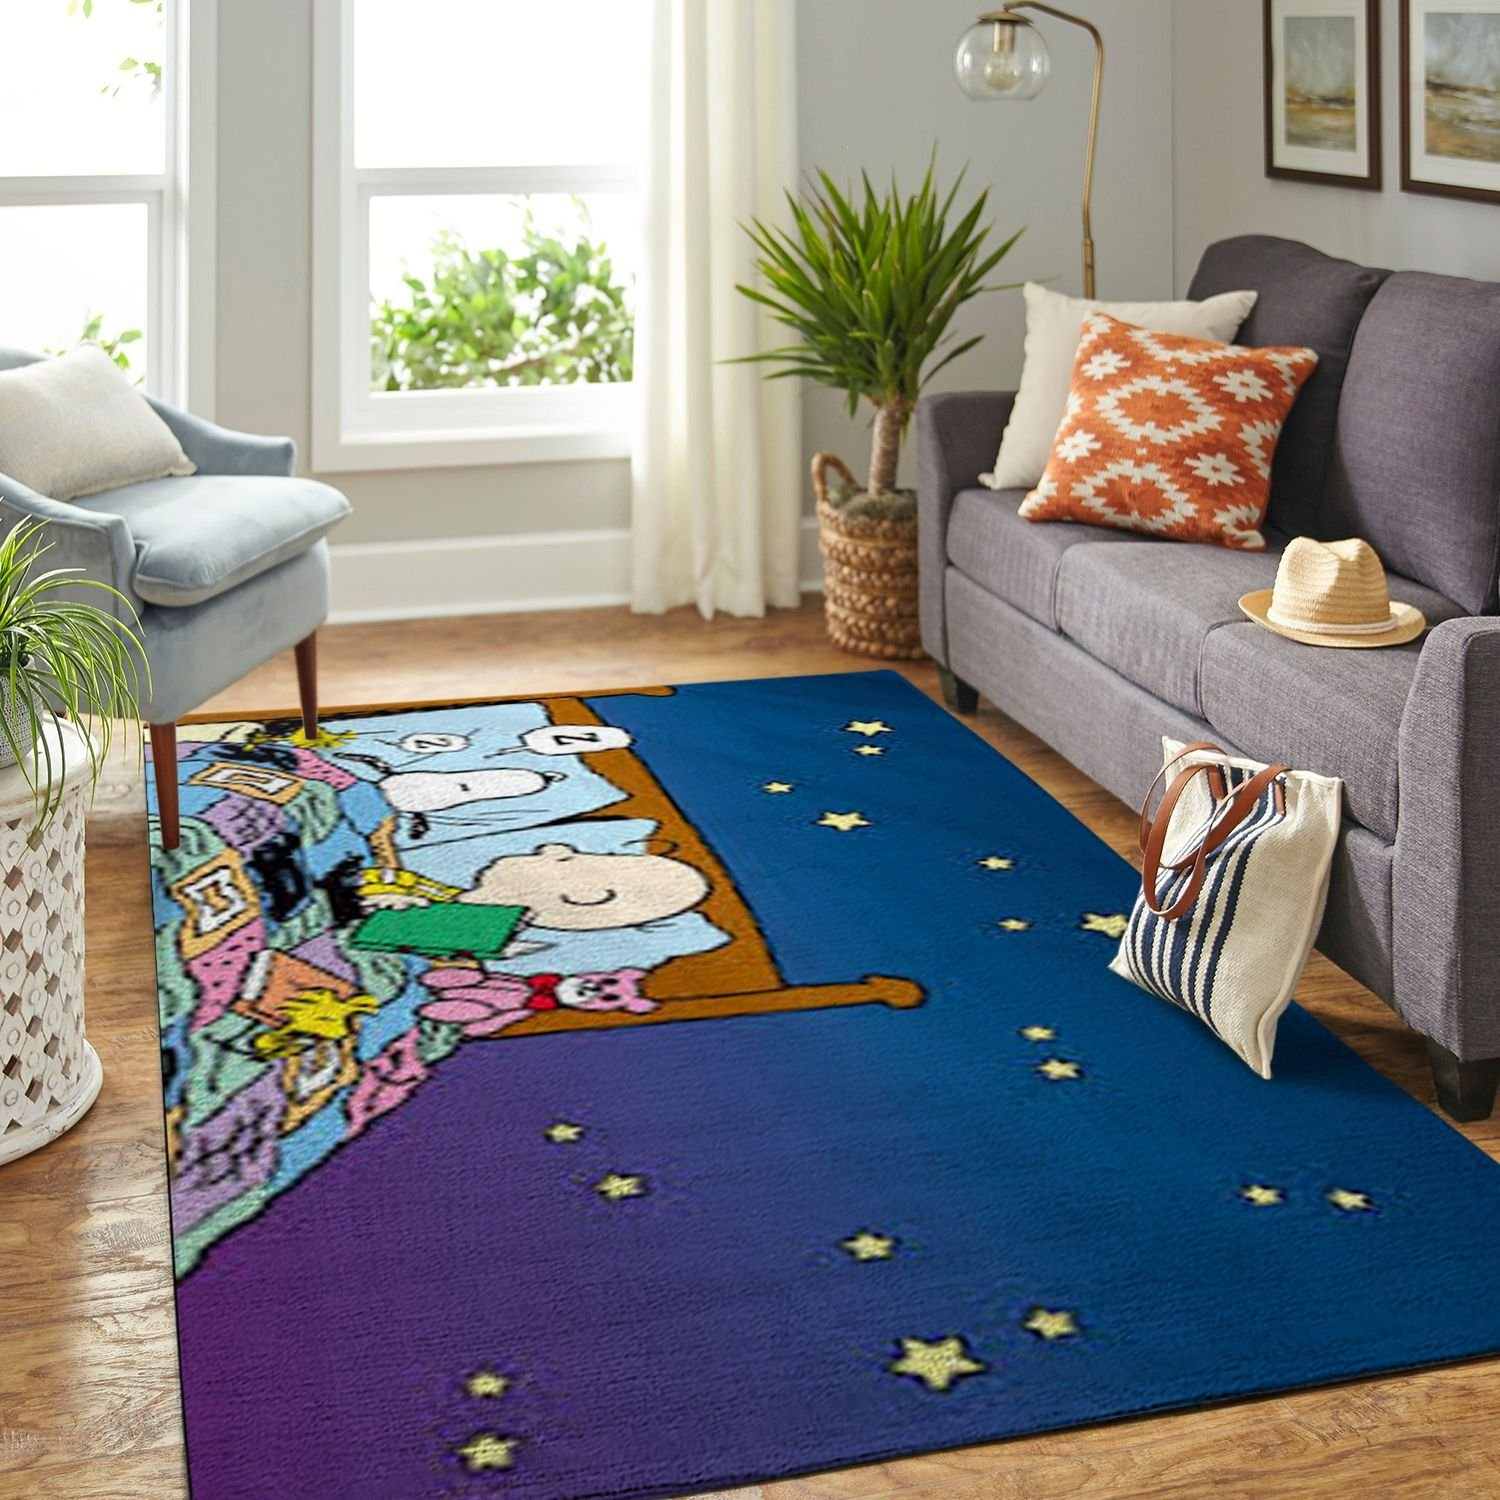 Amazon Snoopy Dog And Peanuts Comic Living Room Area No6558 Rug